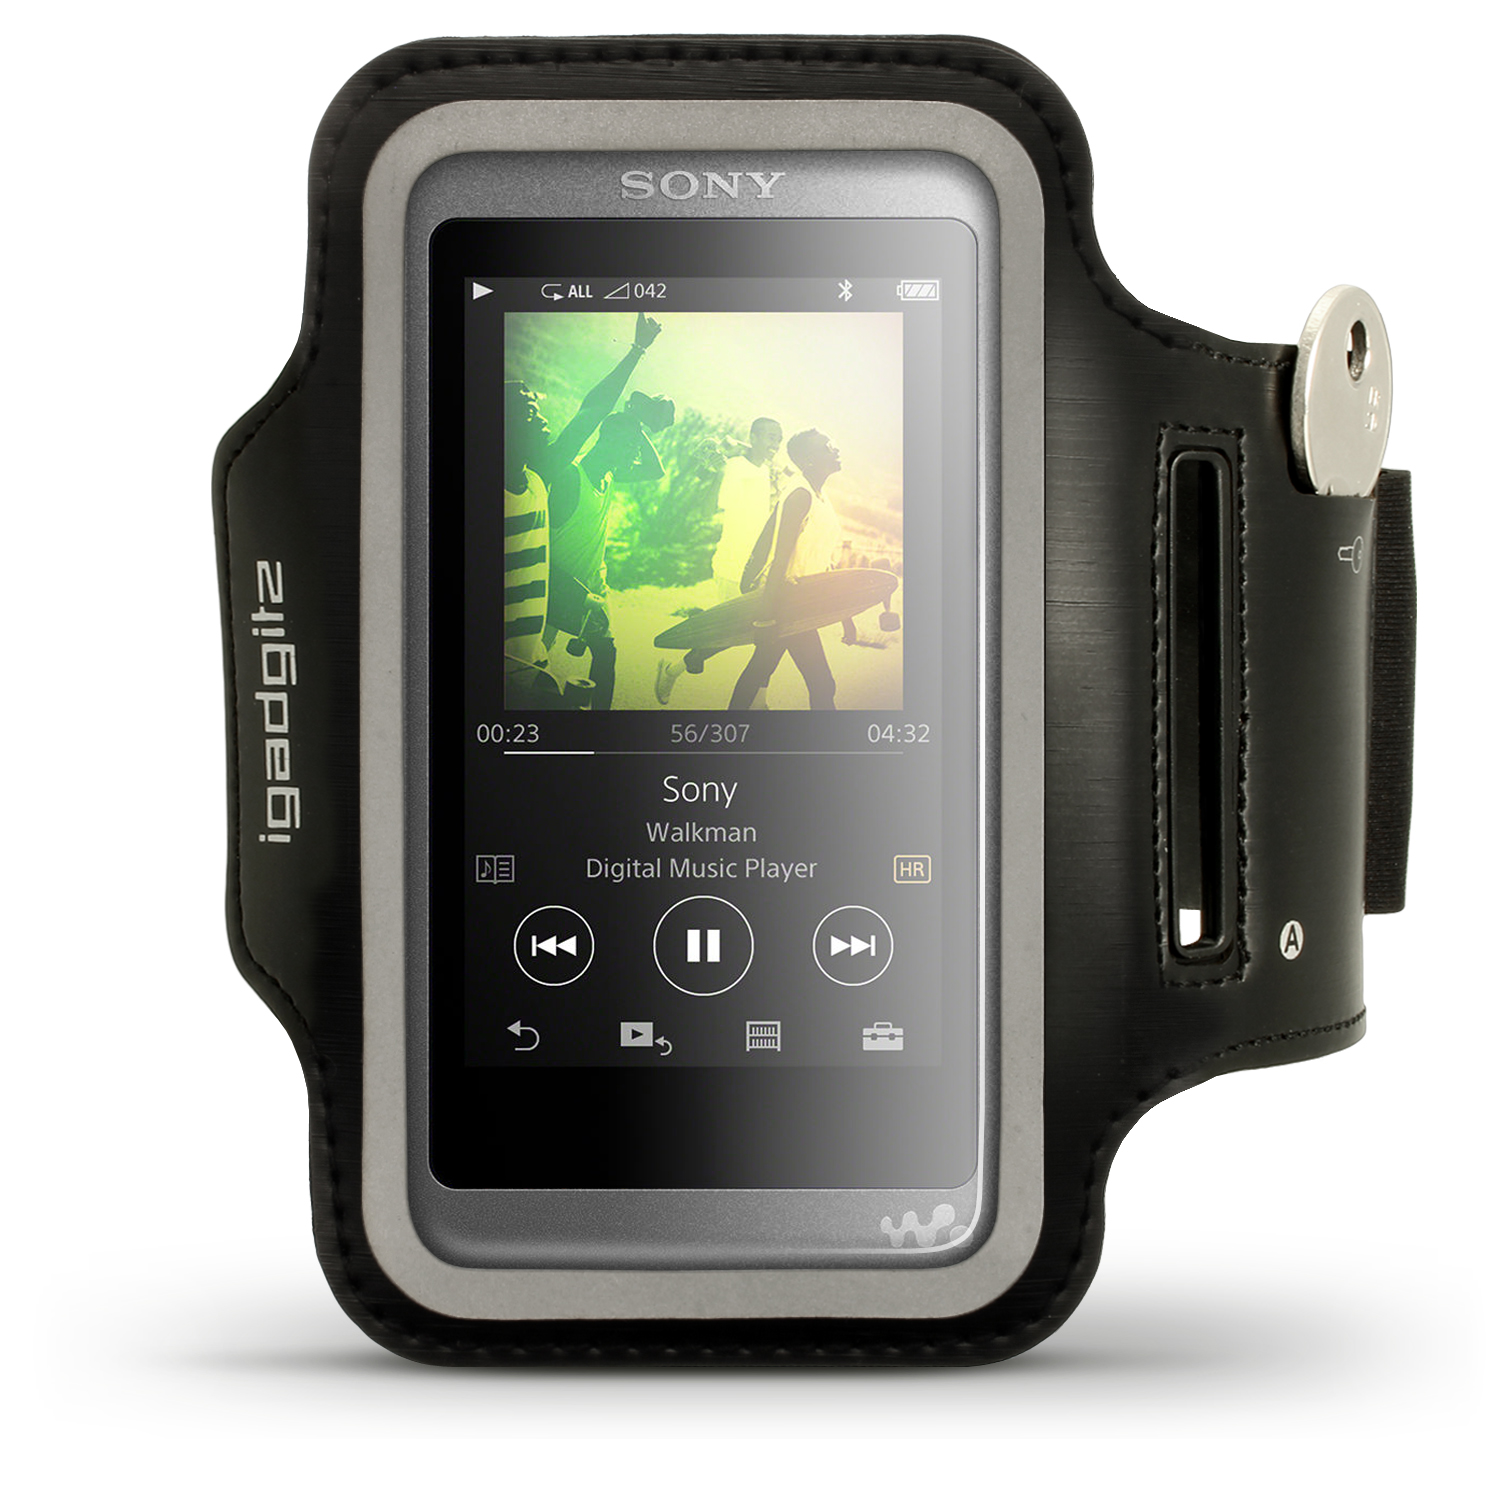 Igadgitz Reflective Black Sports Jogging Gym Armband For Sony Walkman Nw A35 Nw A40 Mp3 Player